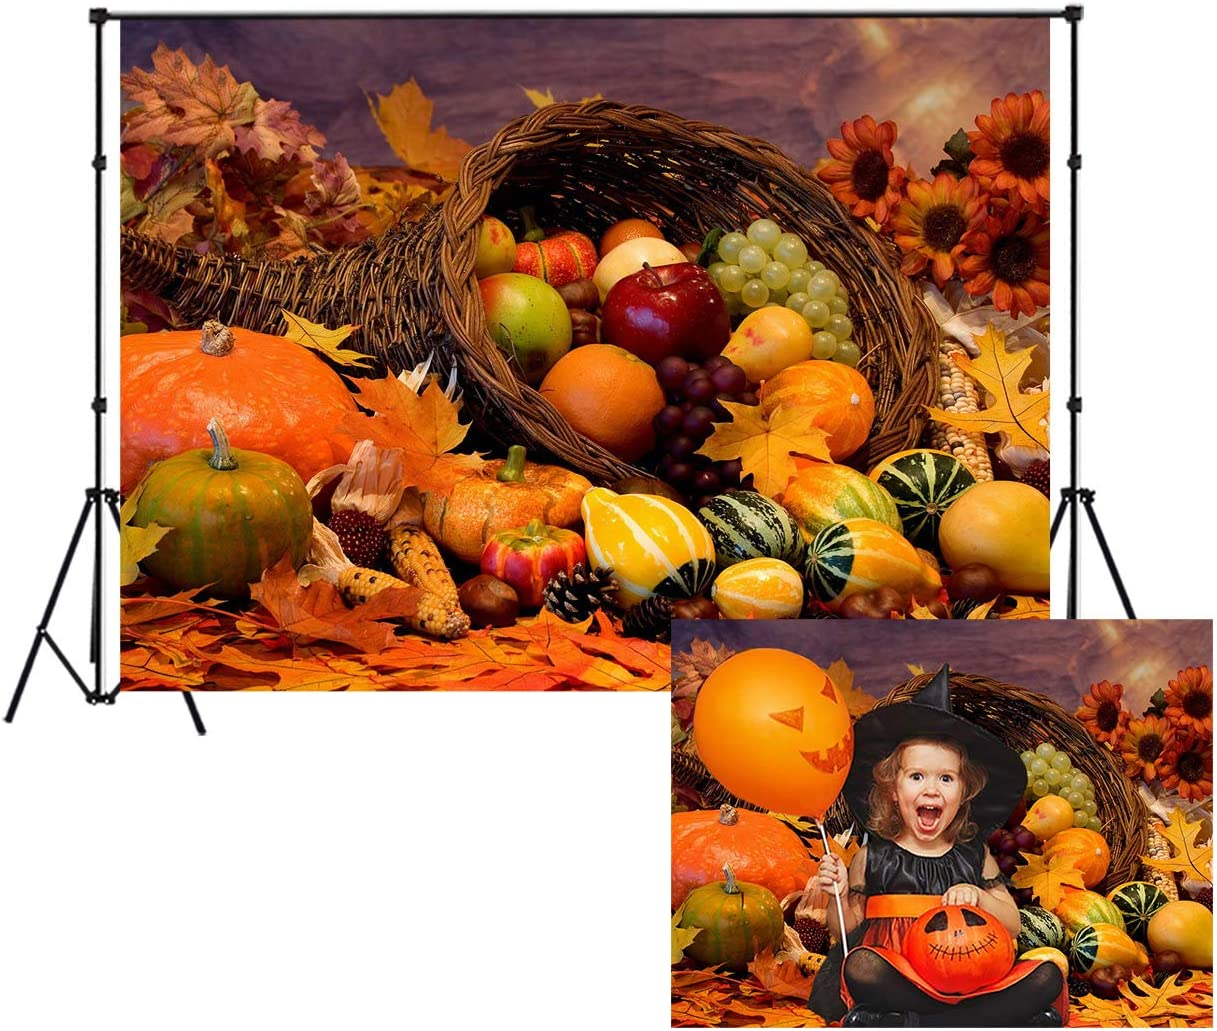 LB Rustic Farm Thanksgiving Backdrop for Photography 9x6ft Fall Harvest Pumpkin Photo Backdrop for Party Event Customized Photo Background Studio Props,Seamless Washable